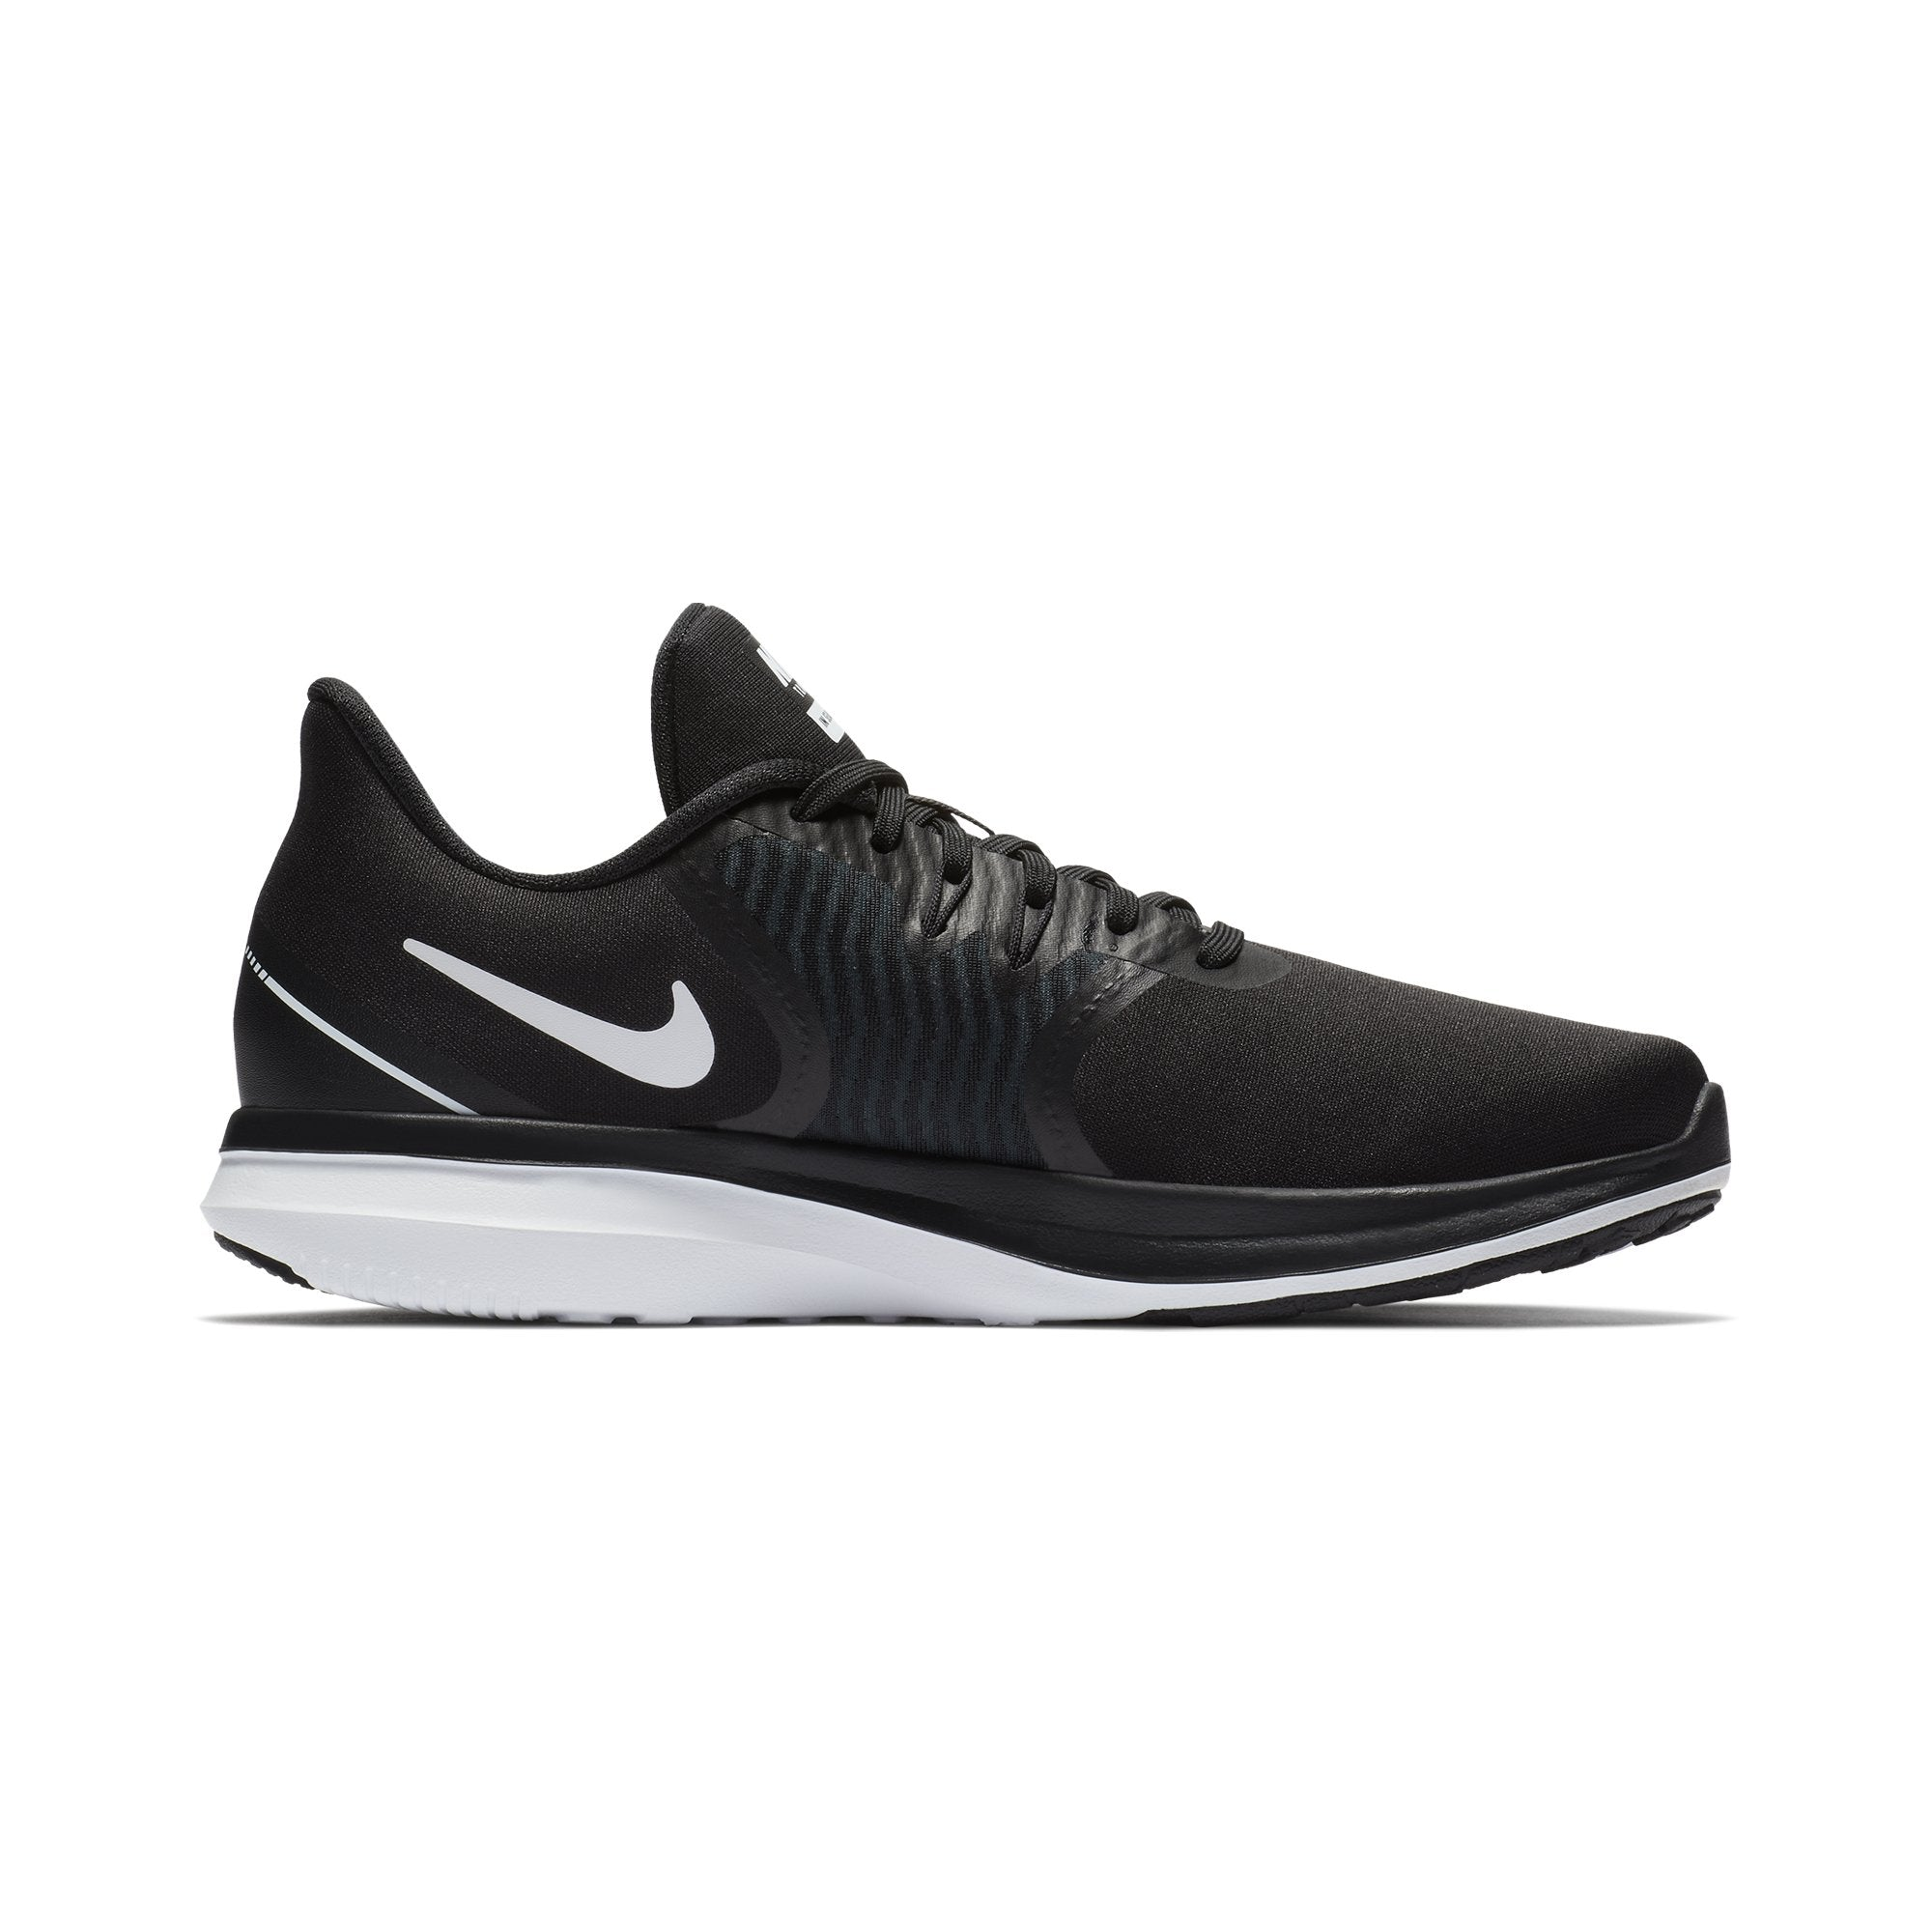 711454028626 Buy Nike Women s In-Season Tr 8 Training Shoes